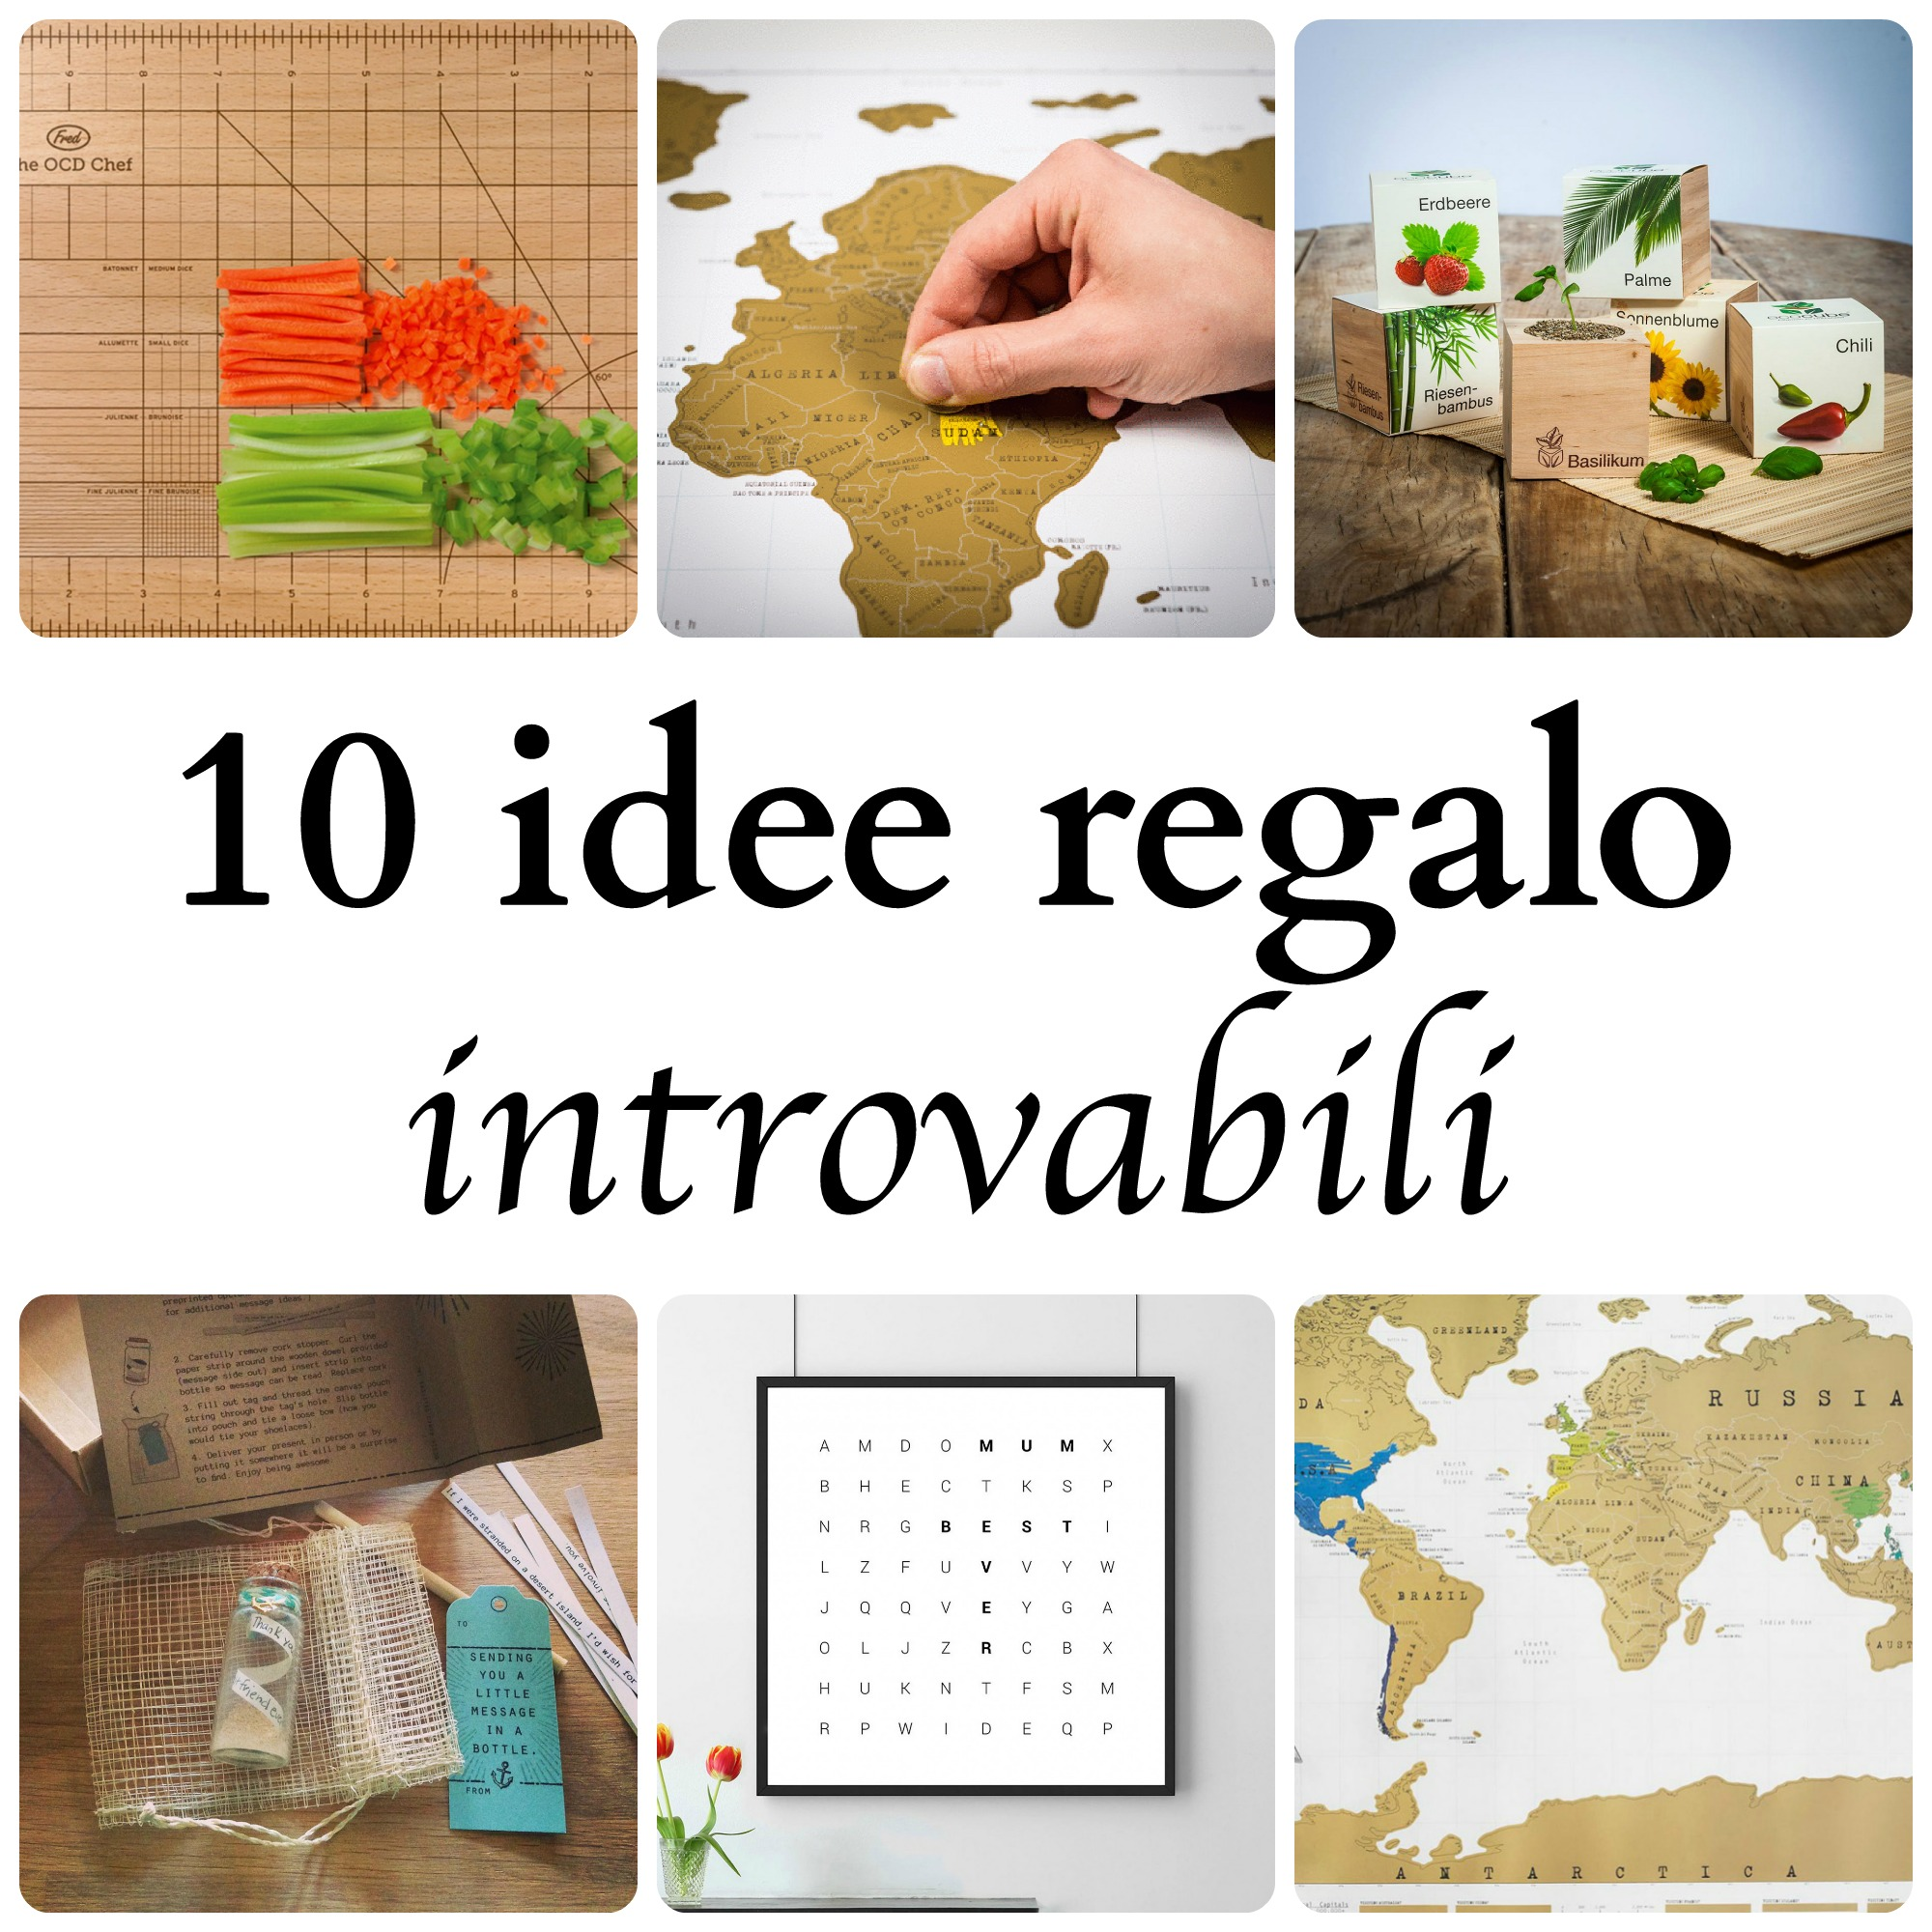 10 idee regalo introvabili babygreen for Idee per piccoli regali